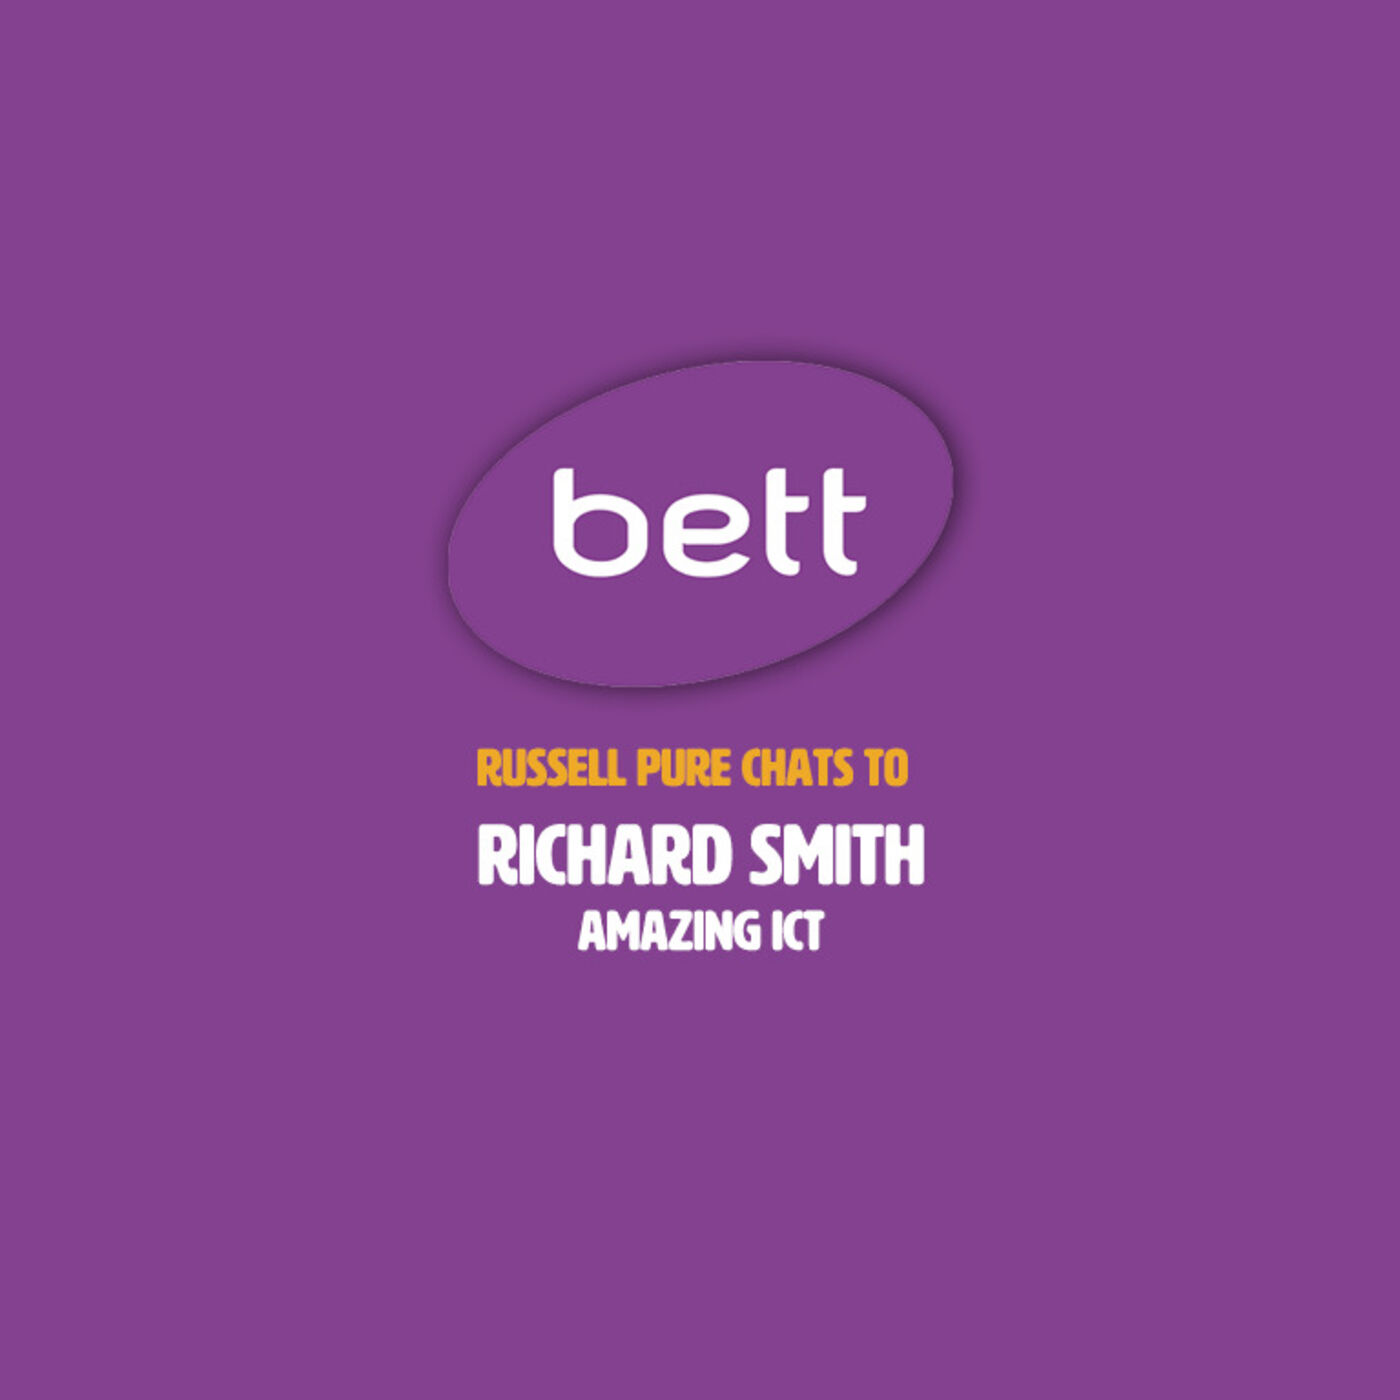 Richard Smith from Amazing ICT talks about some of his favourite bits at Bett